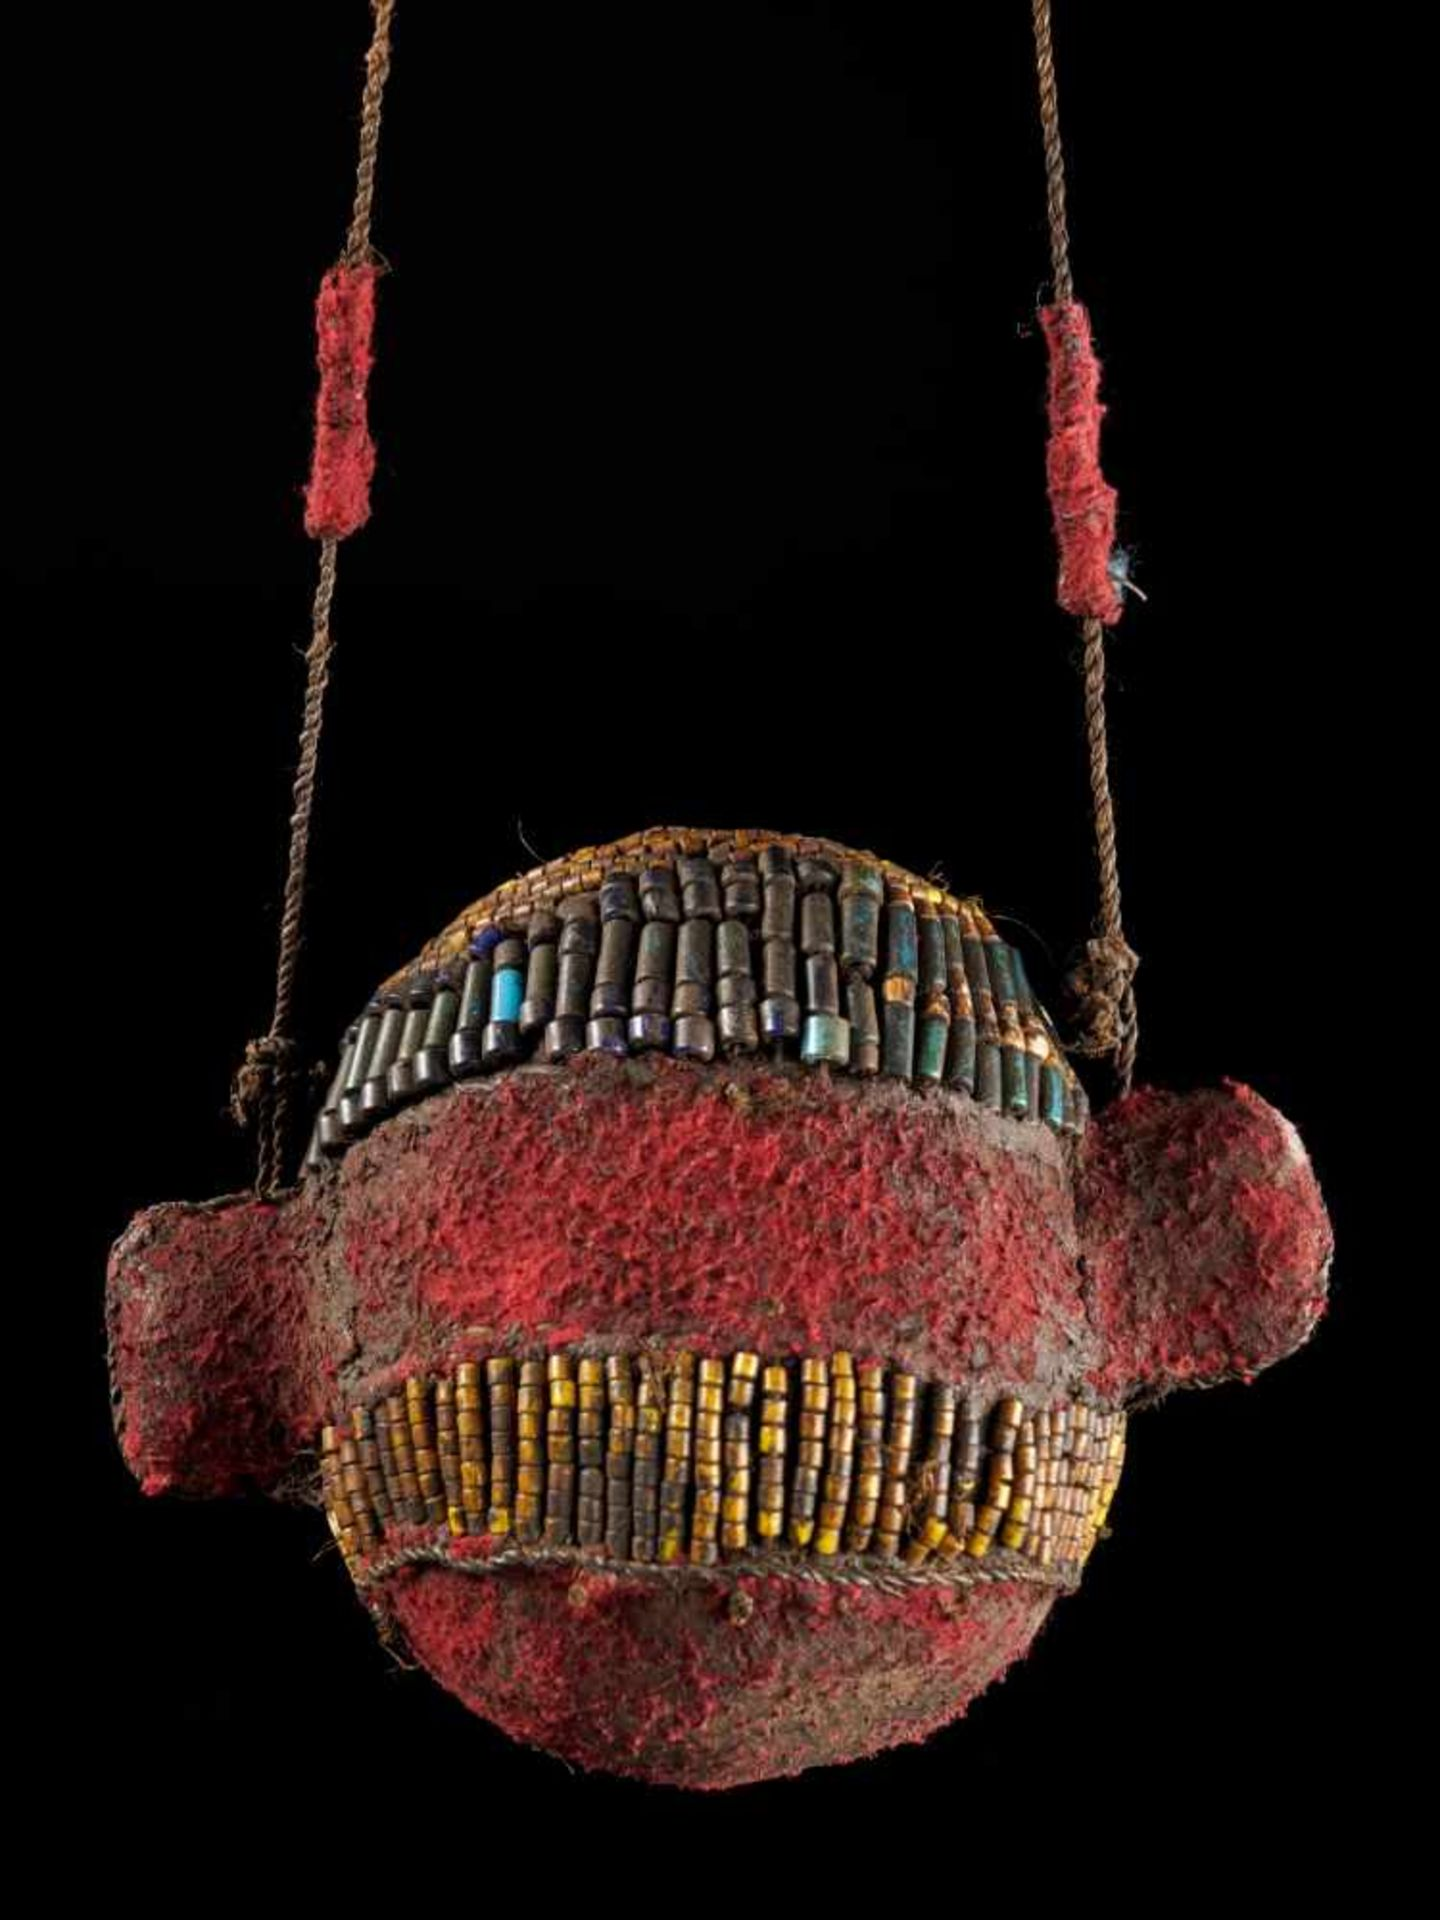 Beaded Ceremonial Trophy Head - Tribal ArtFashioned from wood, red cloth and blue and yellow glass - Bild 2 aus 4